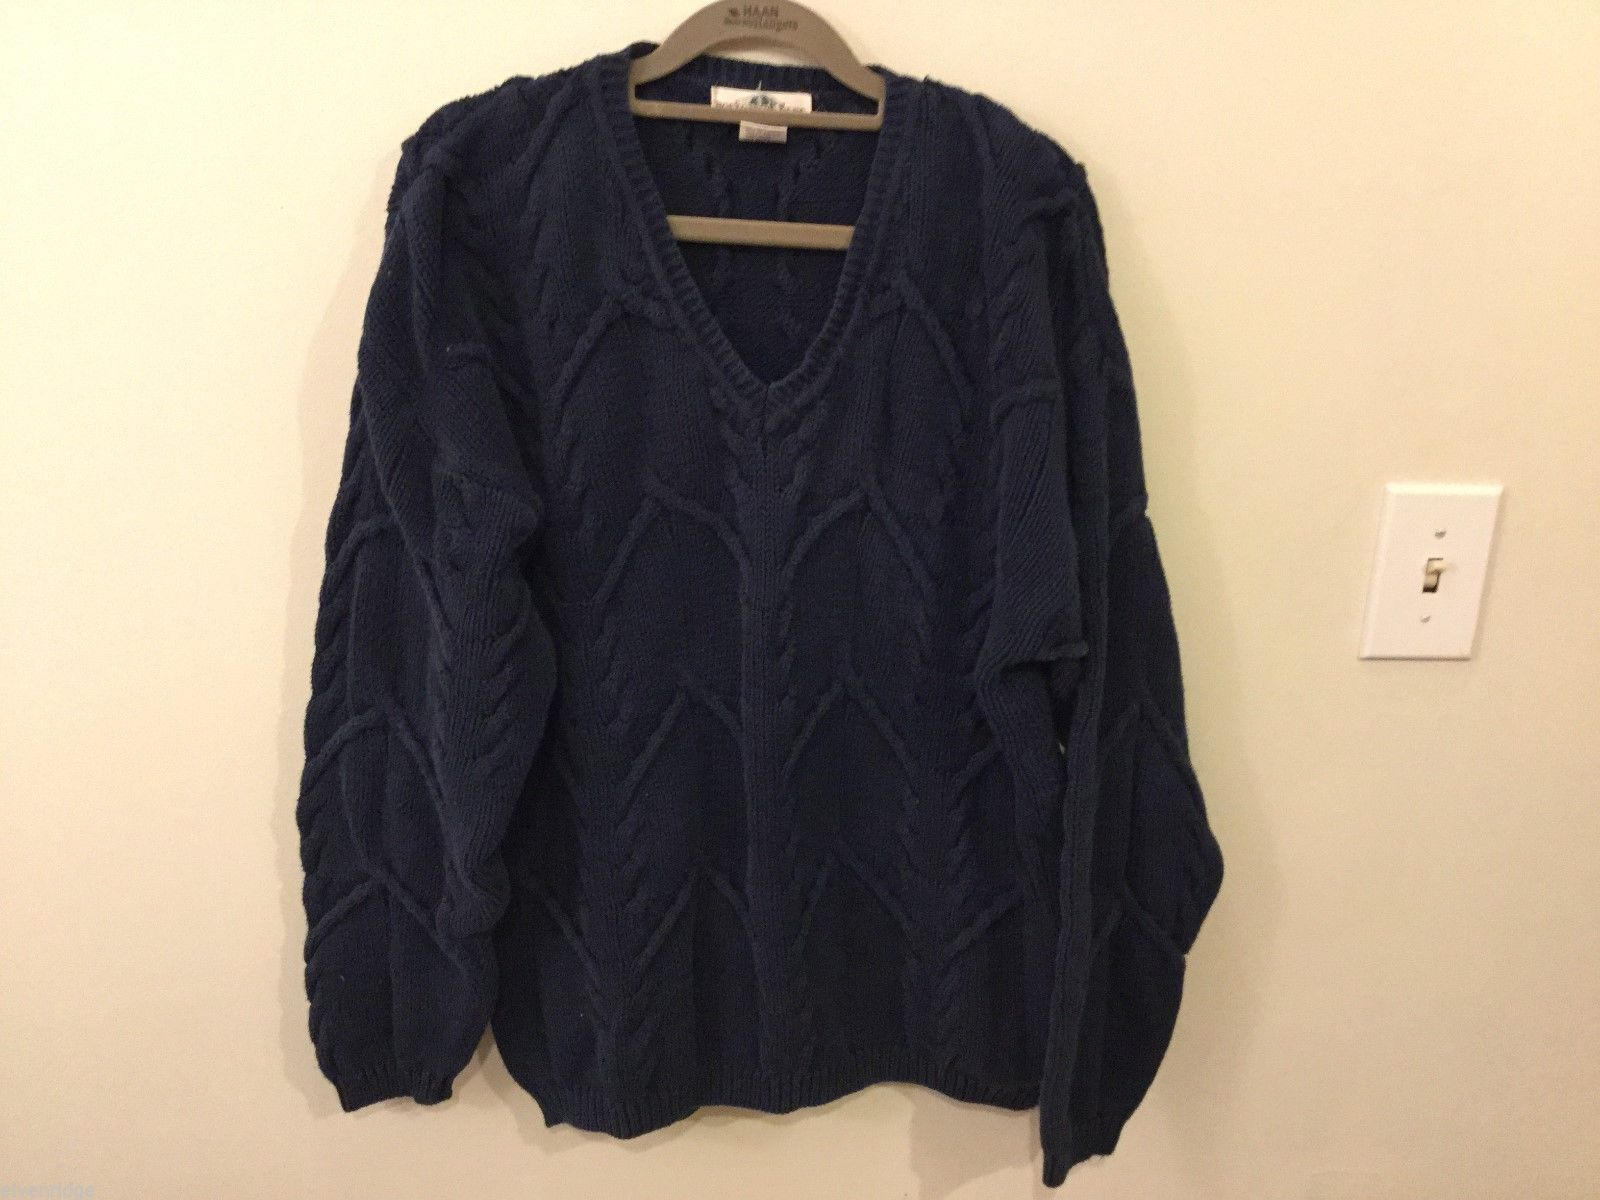 Mens Boston Traders Navy Blue Sweater, Size Large